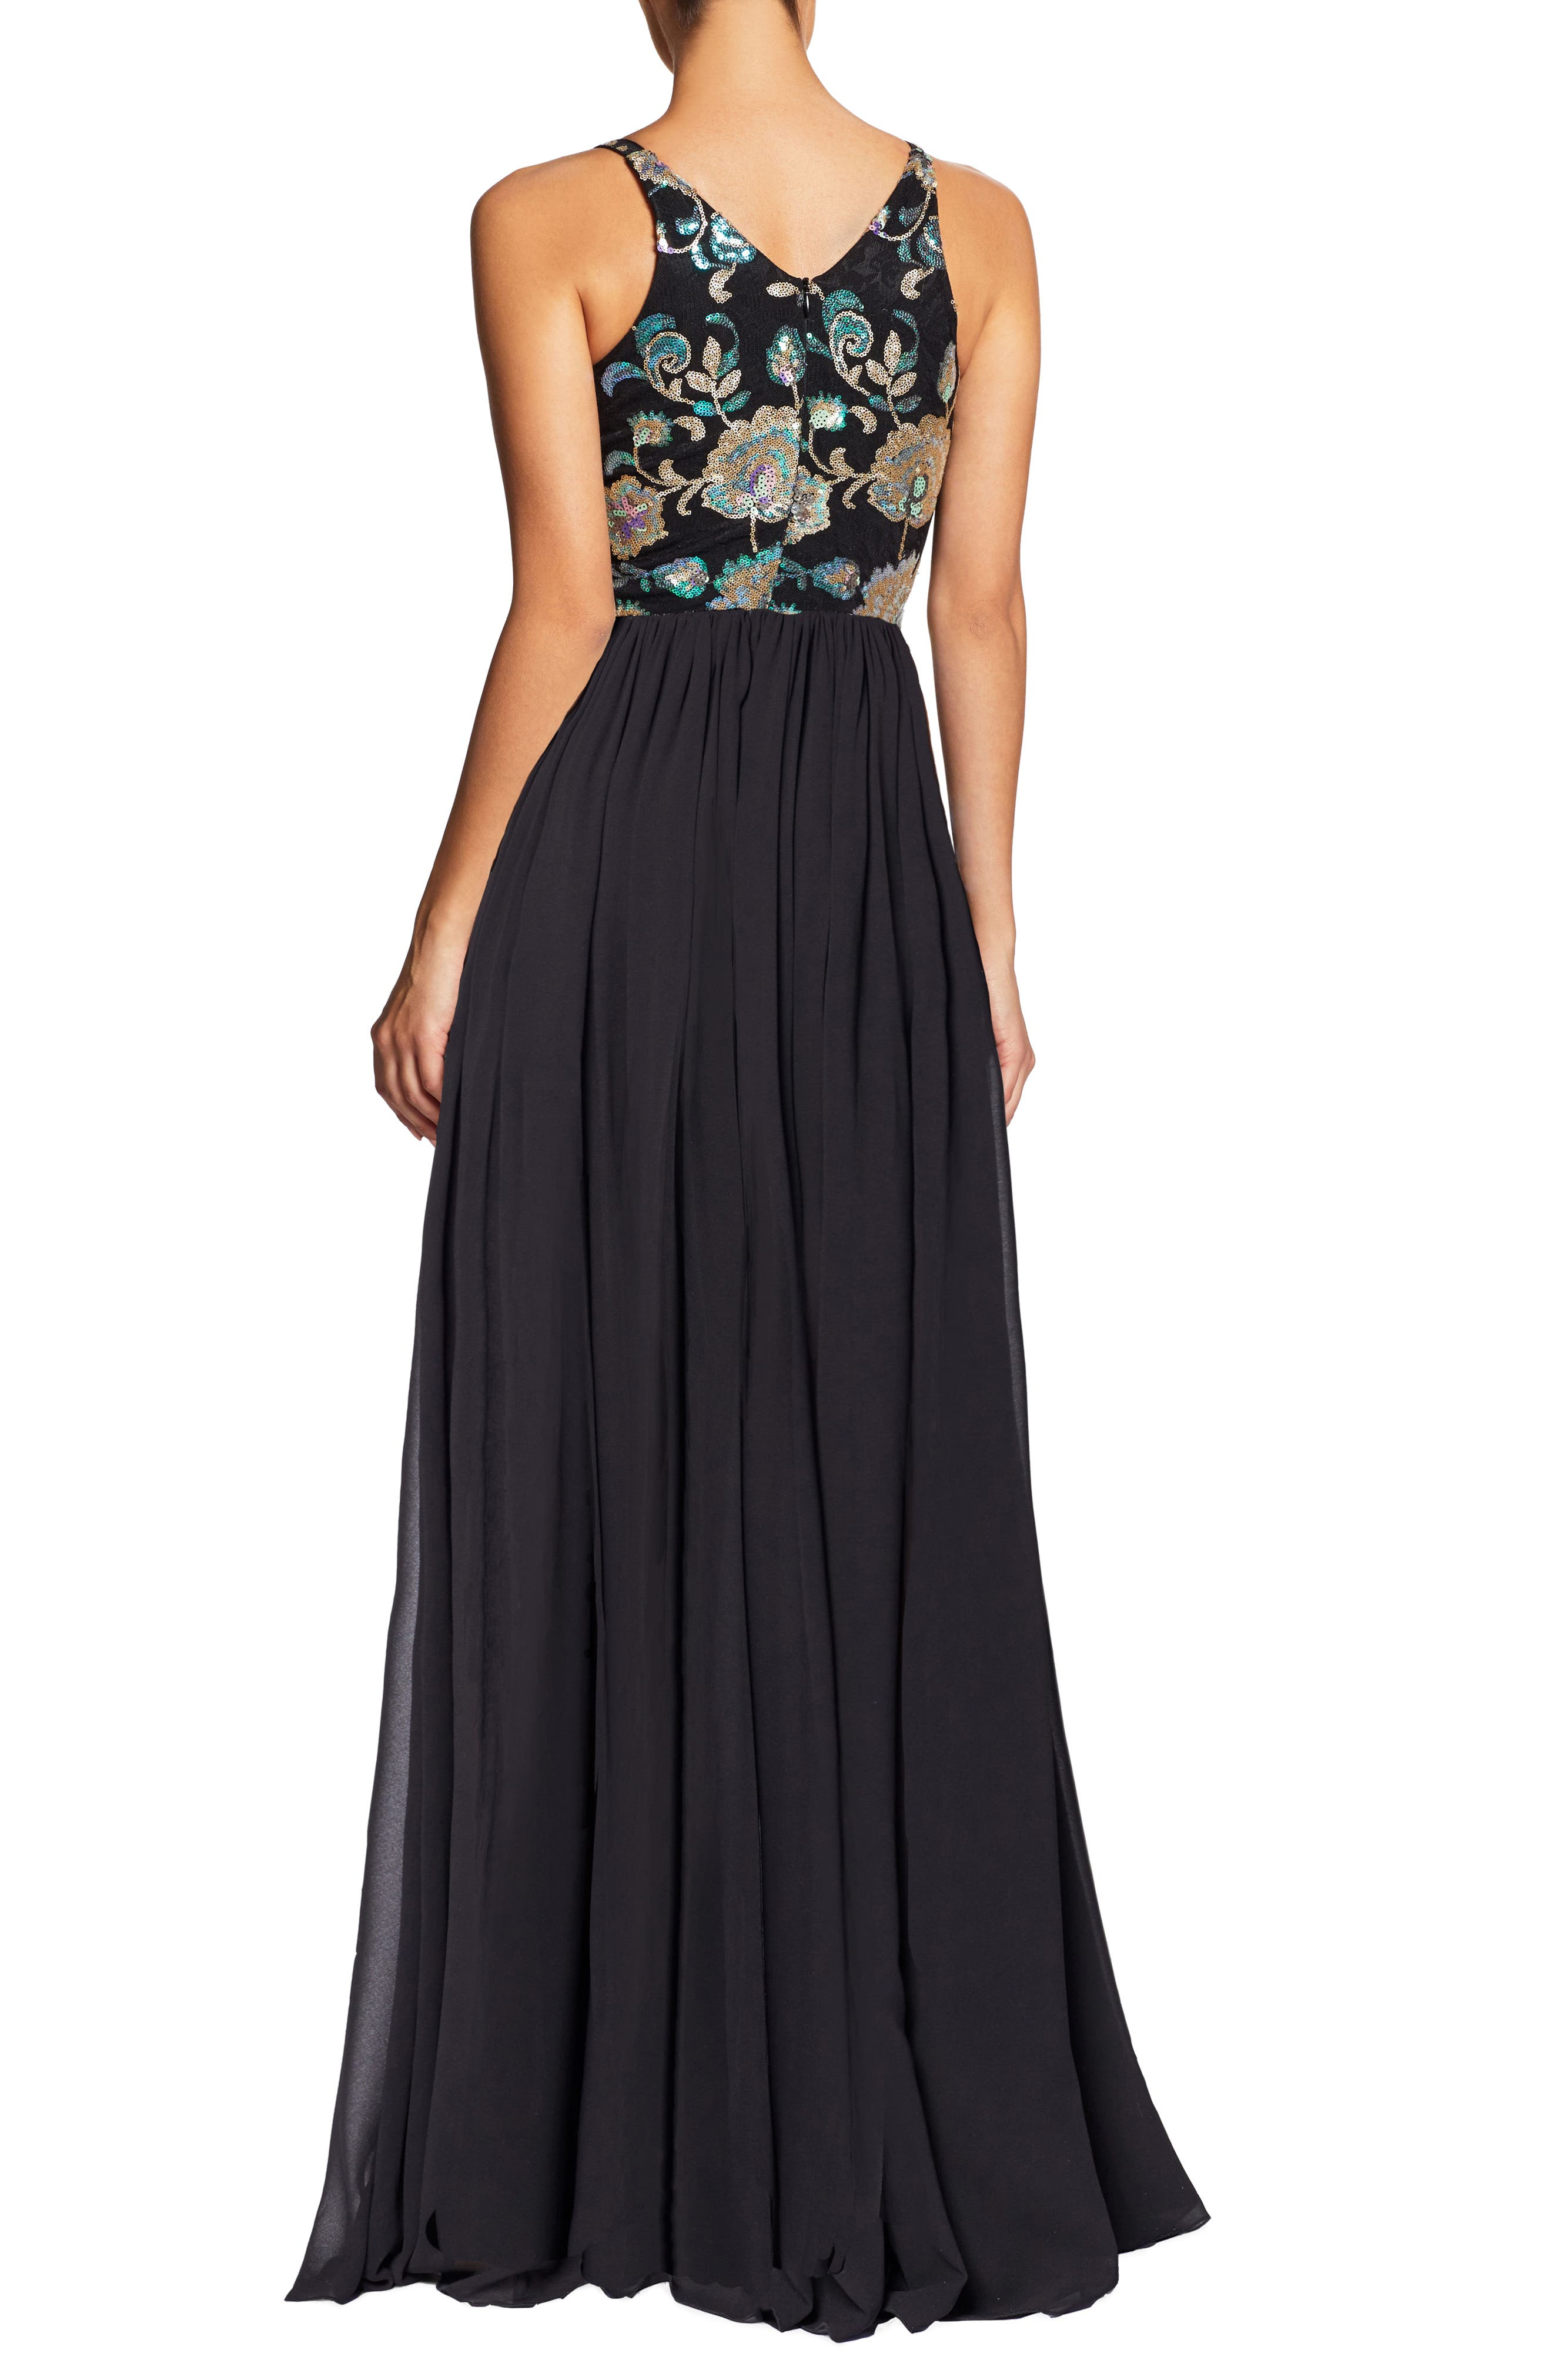 Adriana Sequin Bodice Gown,                             Alternate thumbnail 3, color,                             Black/ Iridescent Floral